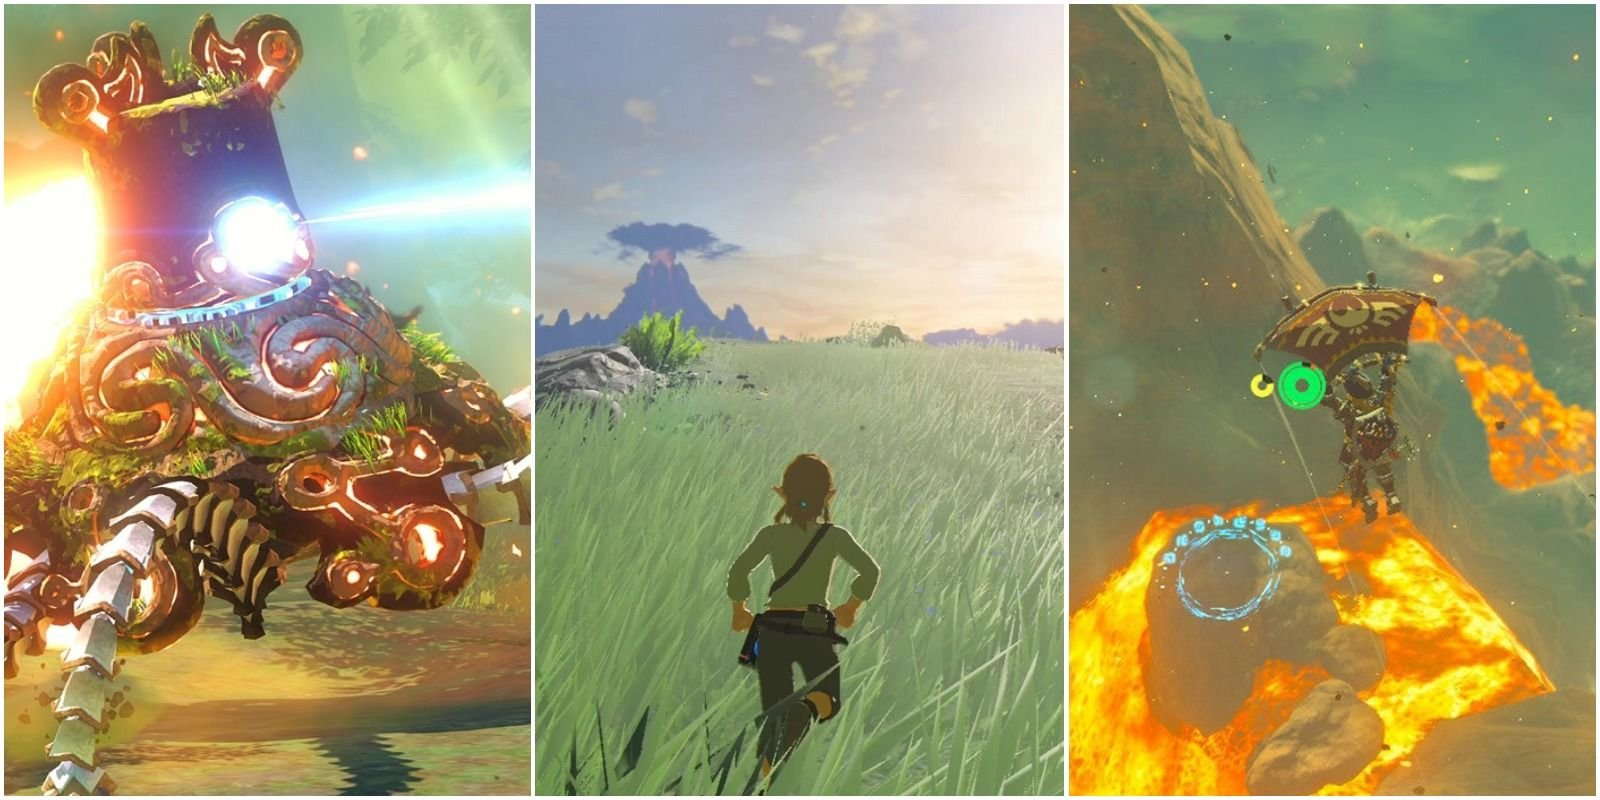 15 Things To Know Before Starting The Legend of Zelda: Breath of the Wild